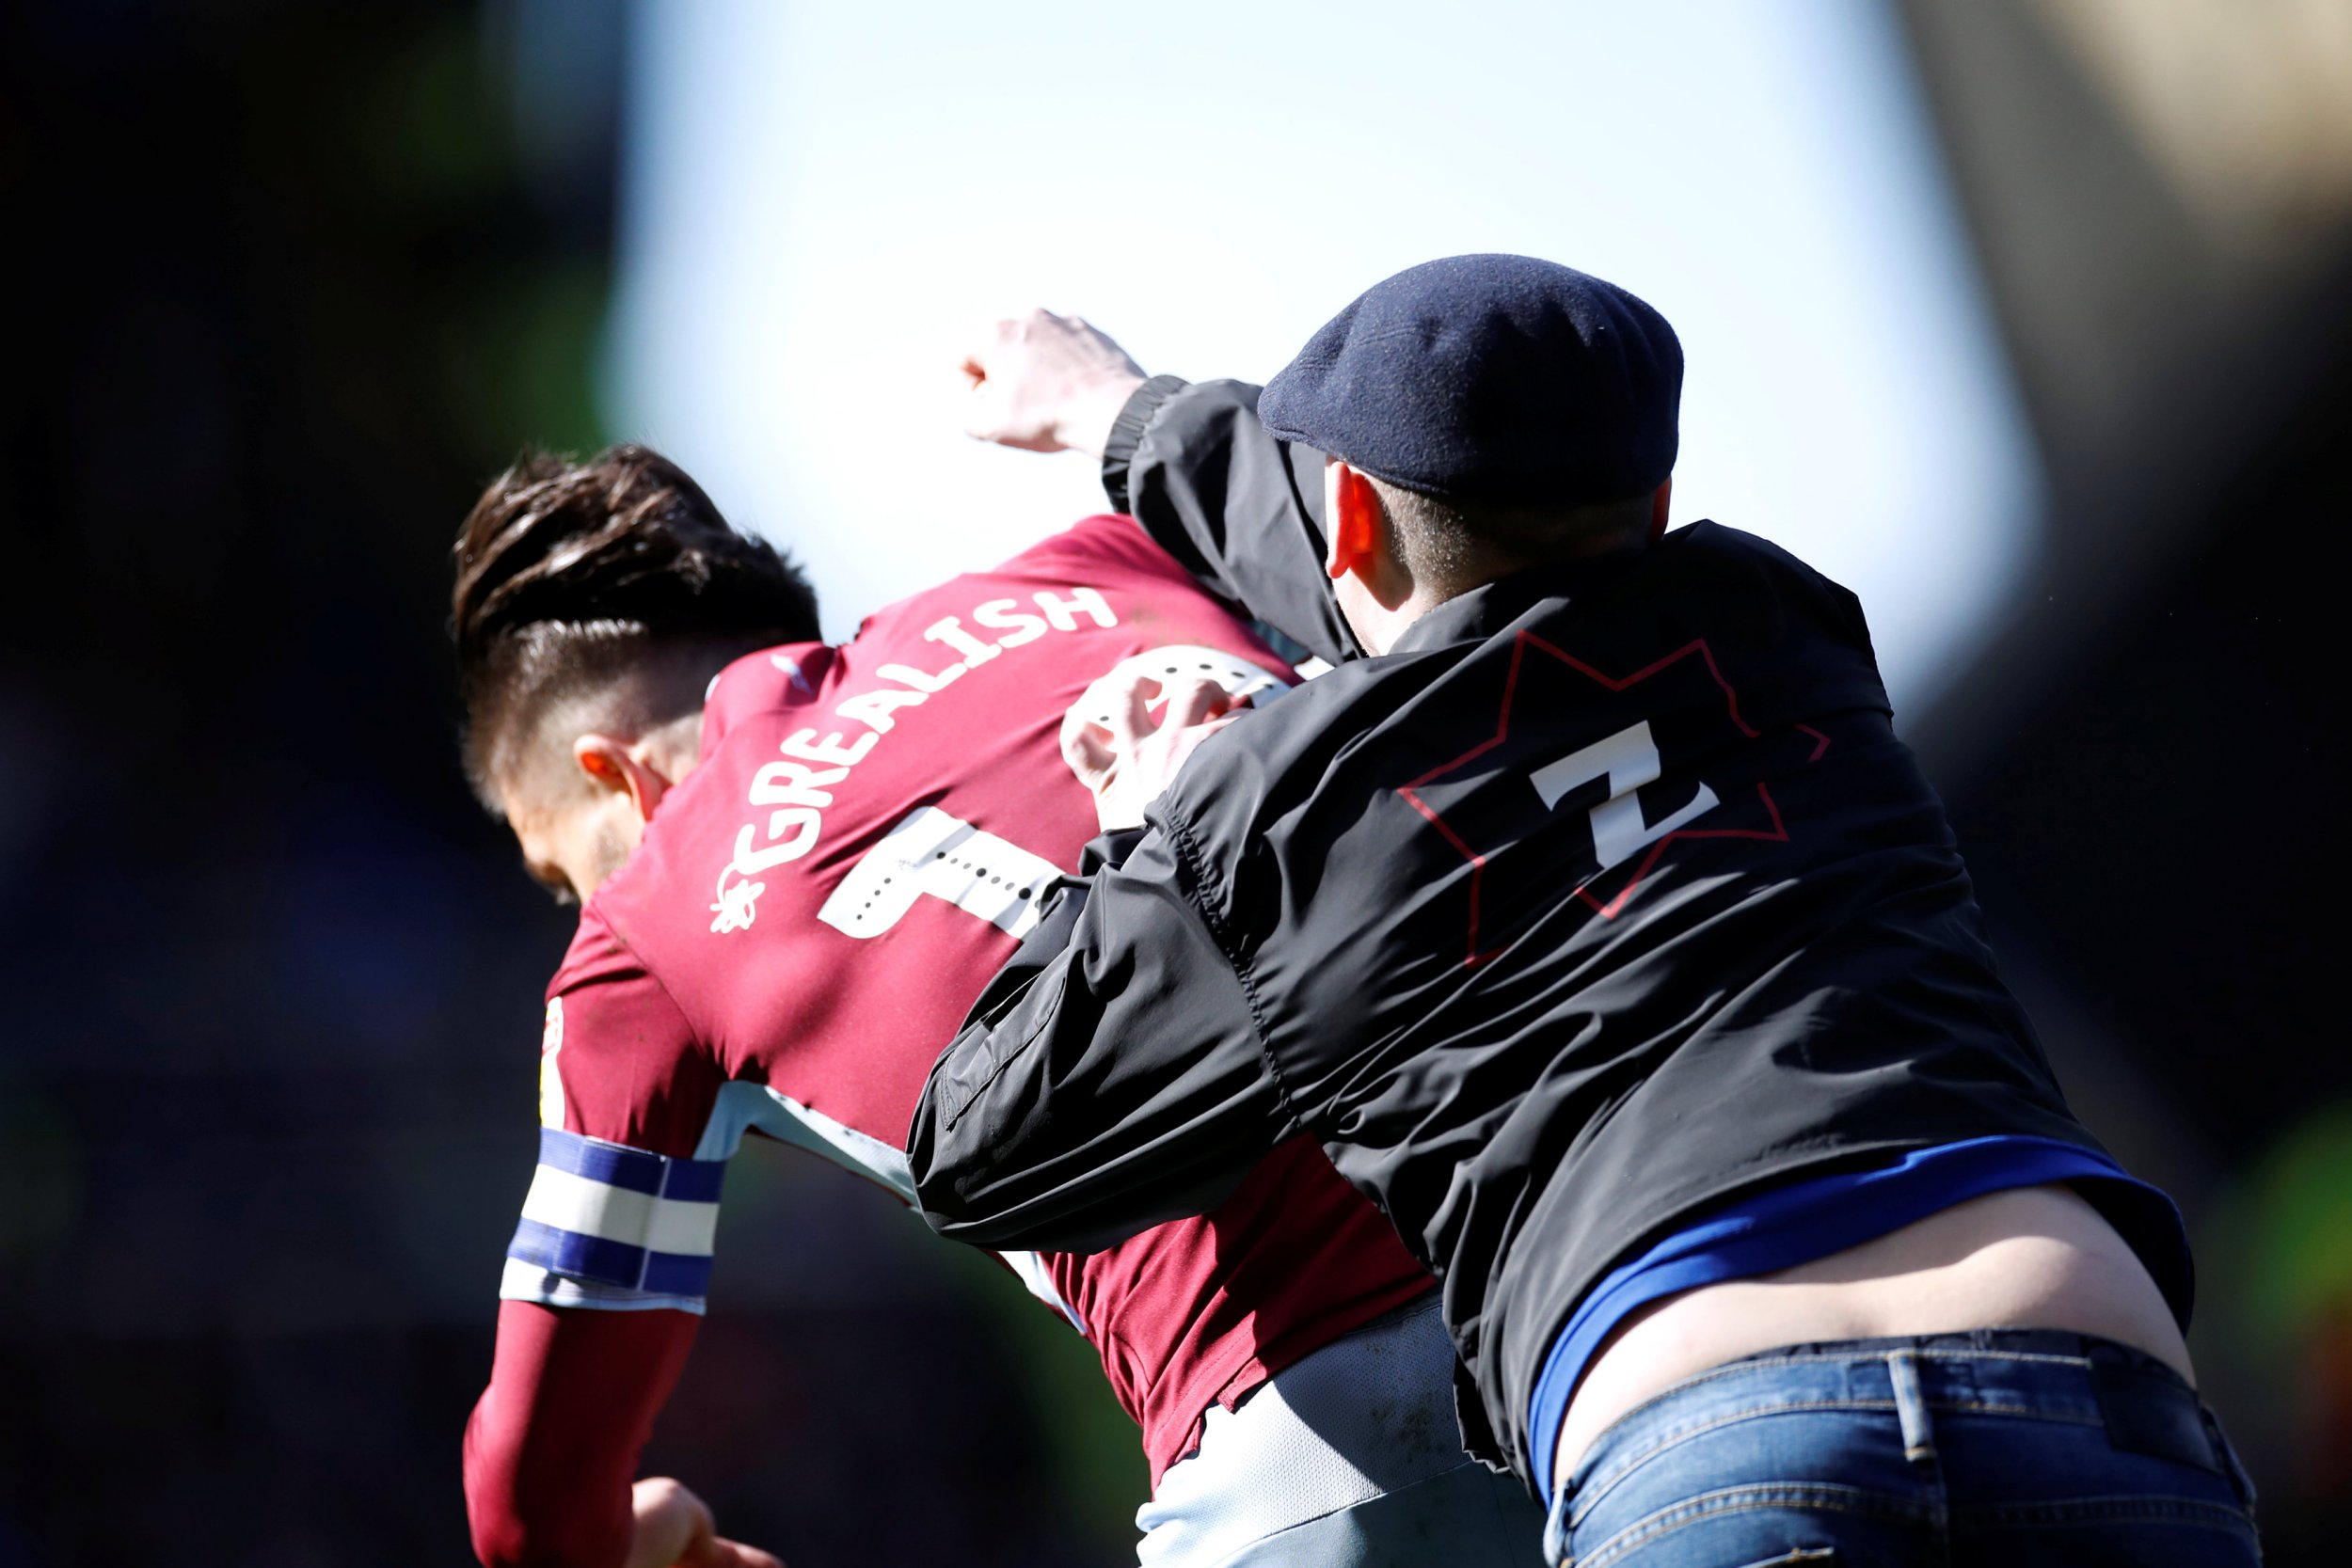 Birmingham fan invades pitch and punches Jack Grealish during Aston Villa clash